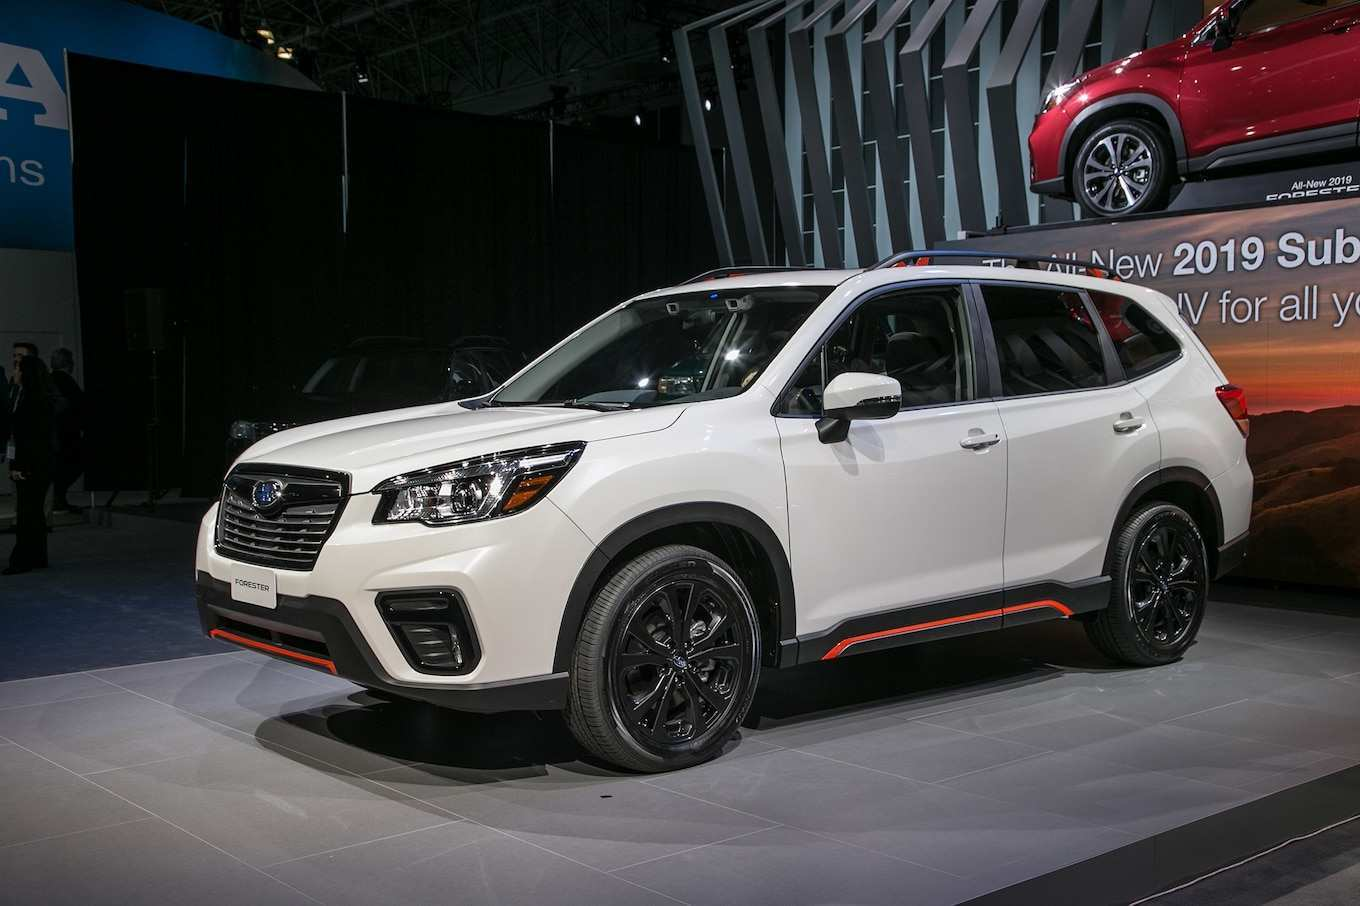 70 All New Subaru 2019 Forester Dimensions Picture Wallpaper with Subaru 2019 Forester Dimensions Picture